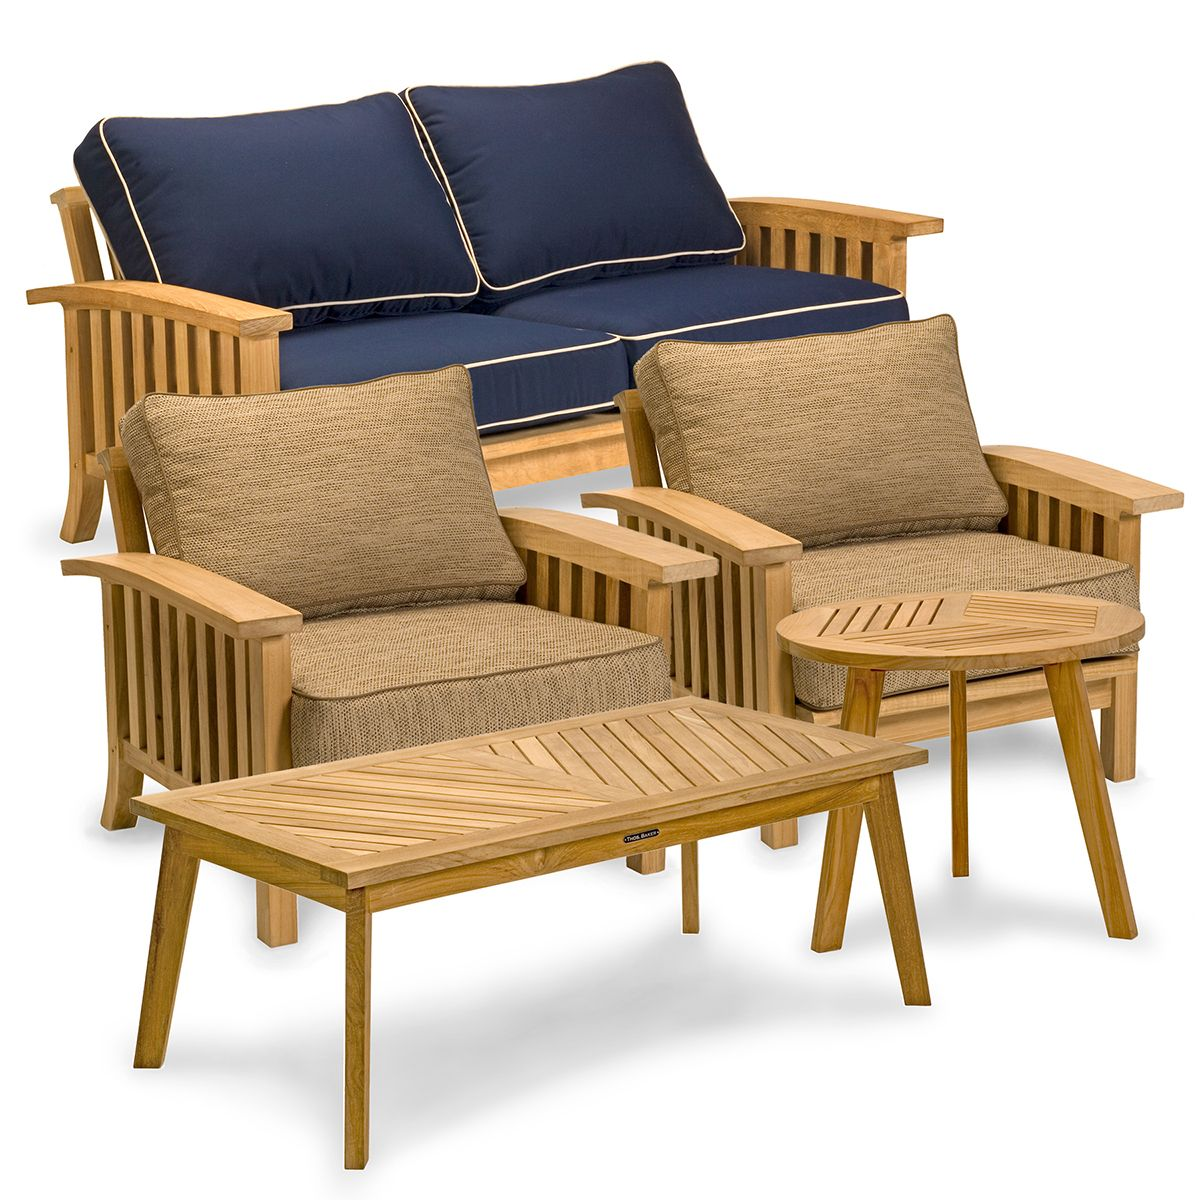 5 Piece Teak Outdoor Lounge Seating Set Craftsman